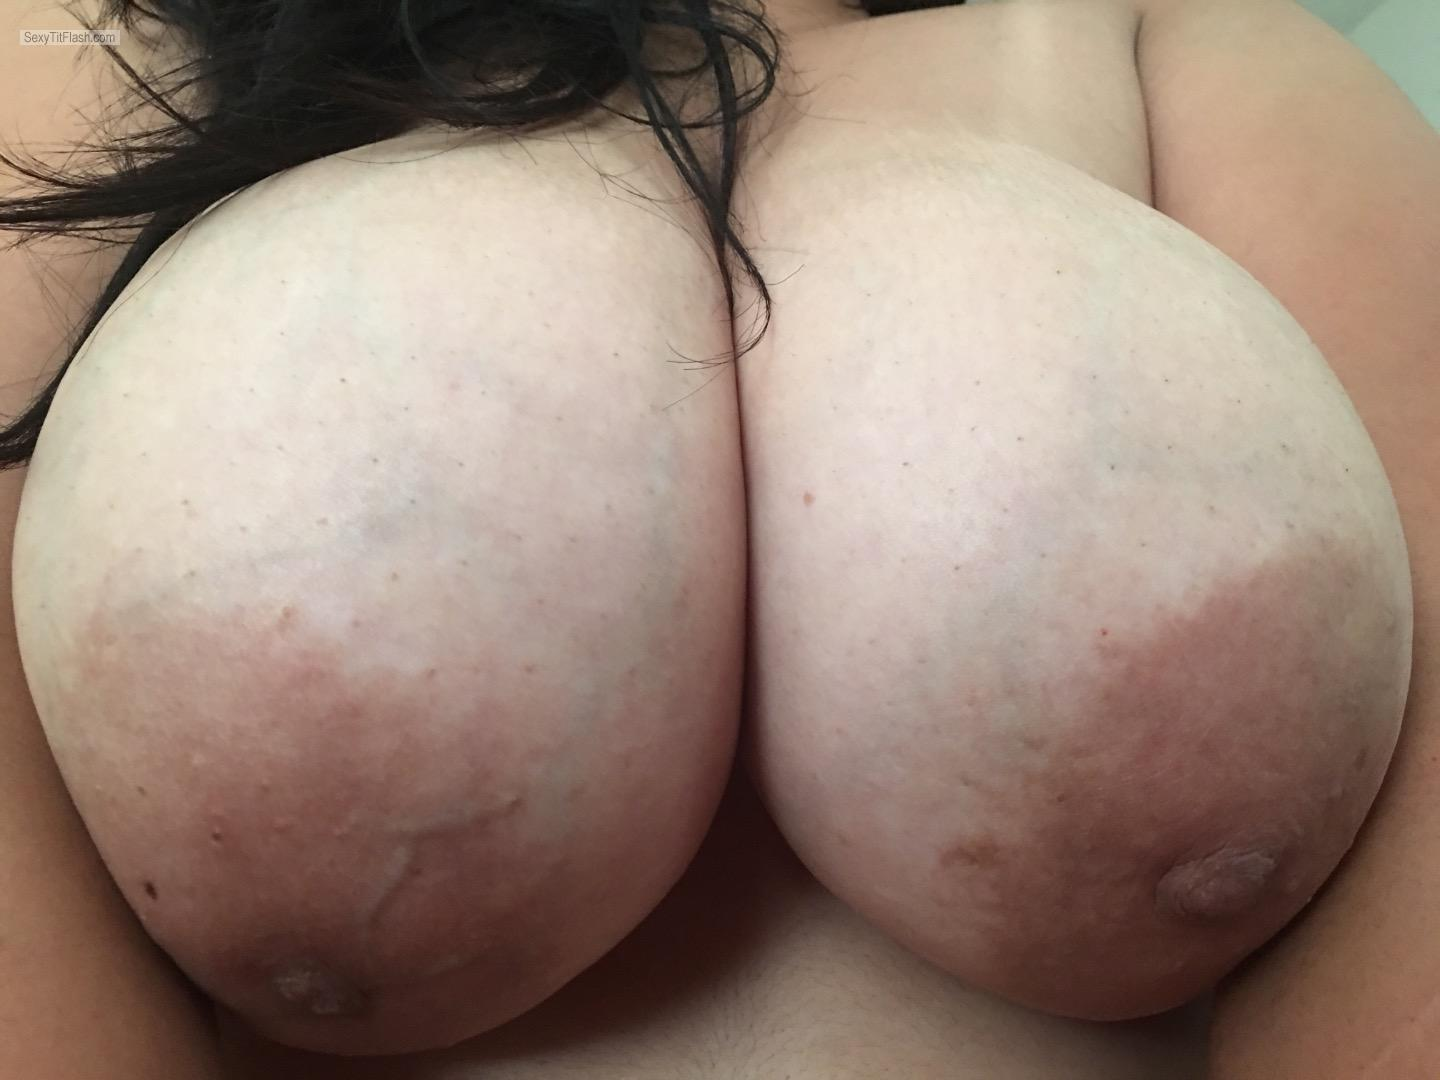 Very big Tits Of My Wife Natural Latin Boobs